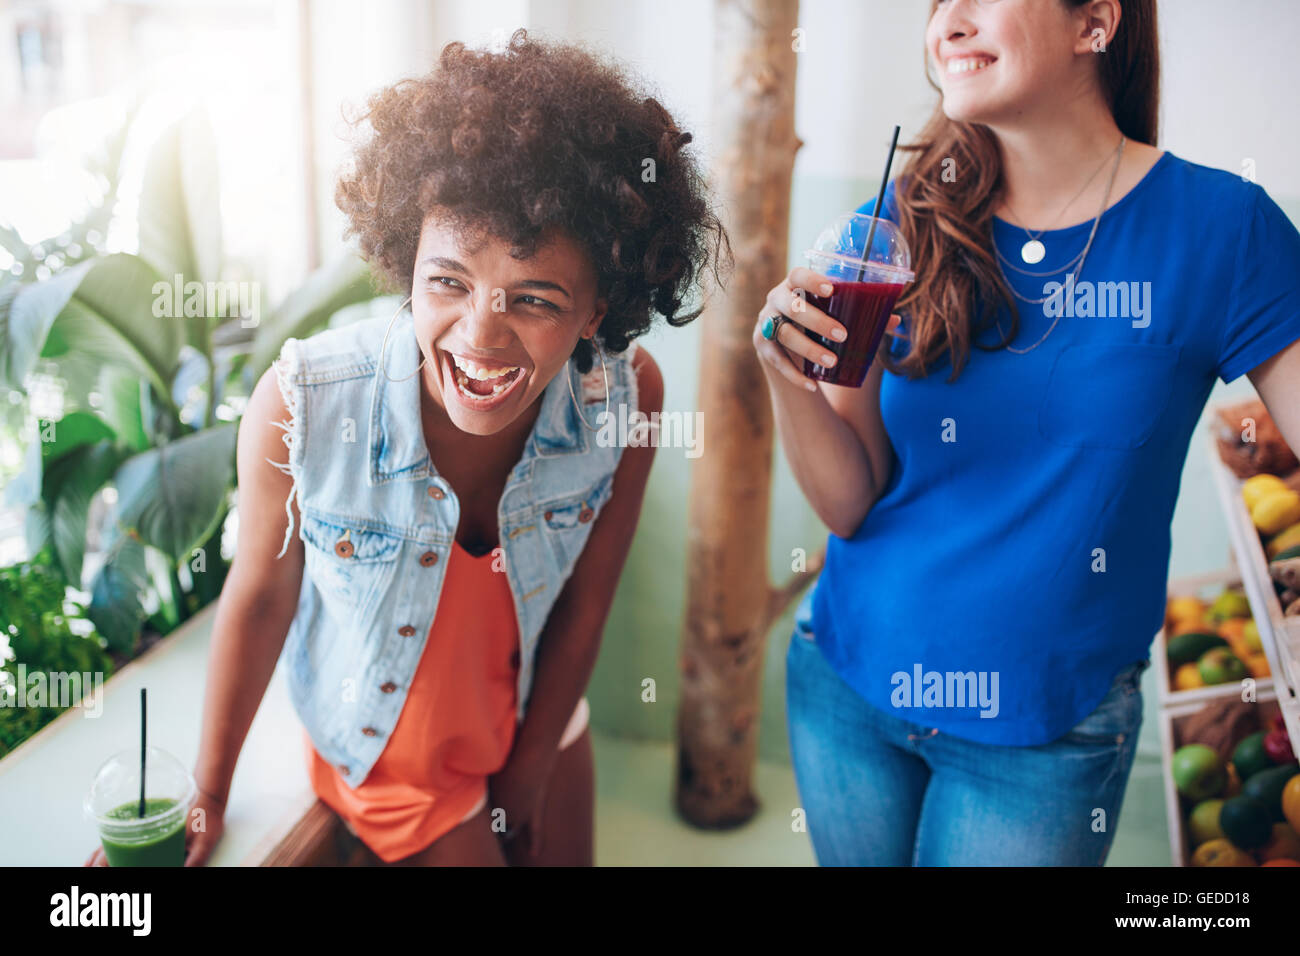 Portrait of cheerful young women at juice bar having a glass of fresh juice. Friends enjoying a juice bar. - Stock Image